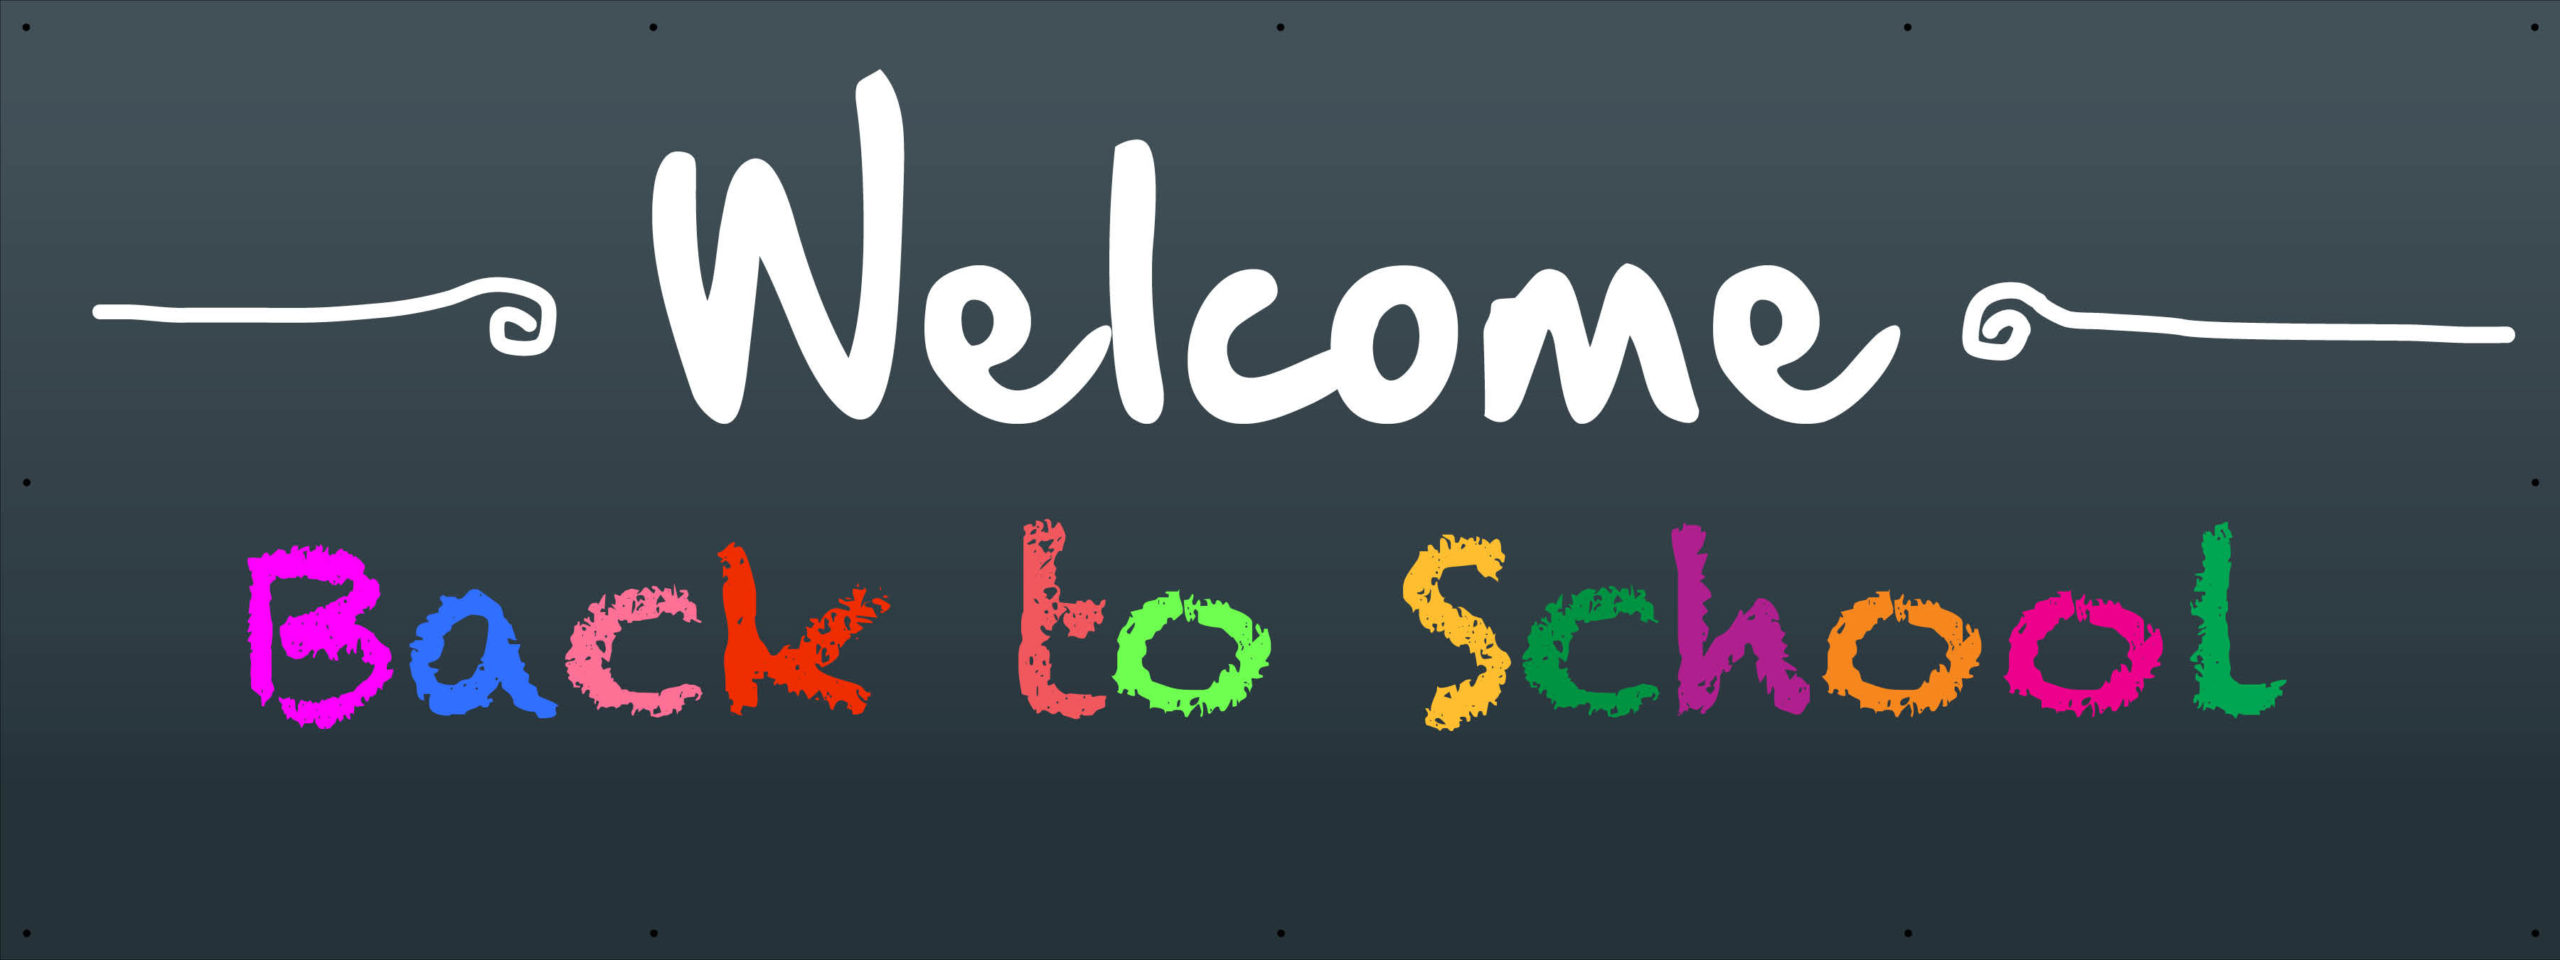 WelcomBack 8x4 good2 scaled Schools and colleges    Image of WelcomBack 8x4 good2 scaled